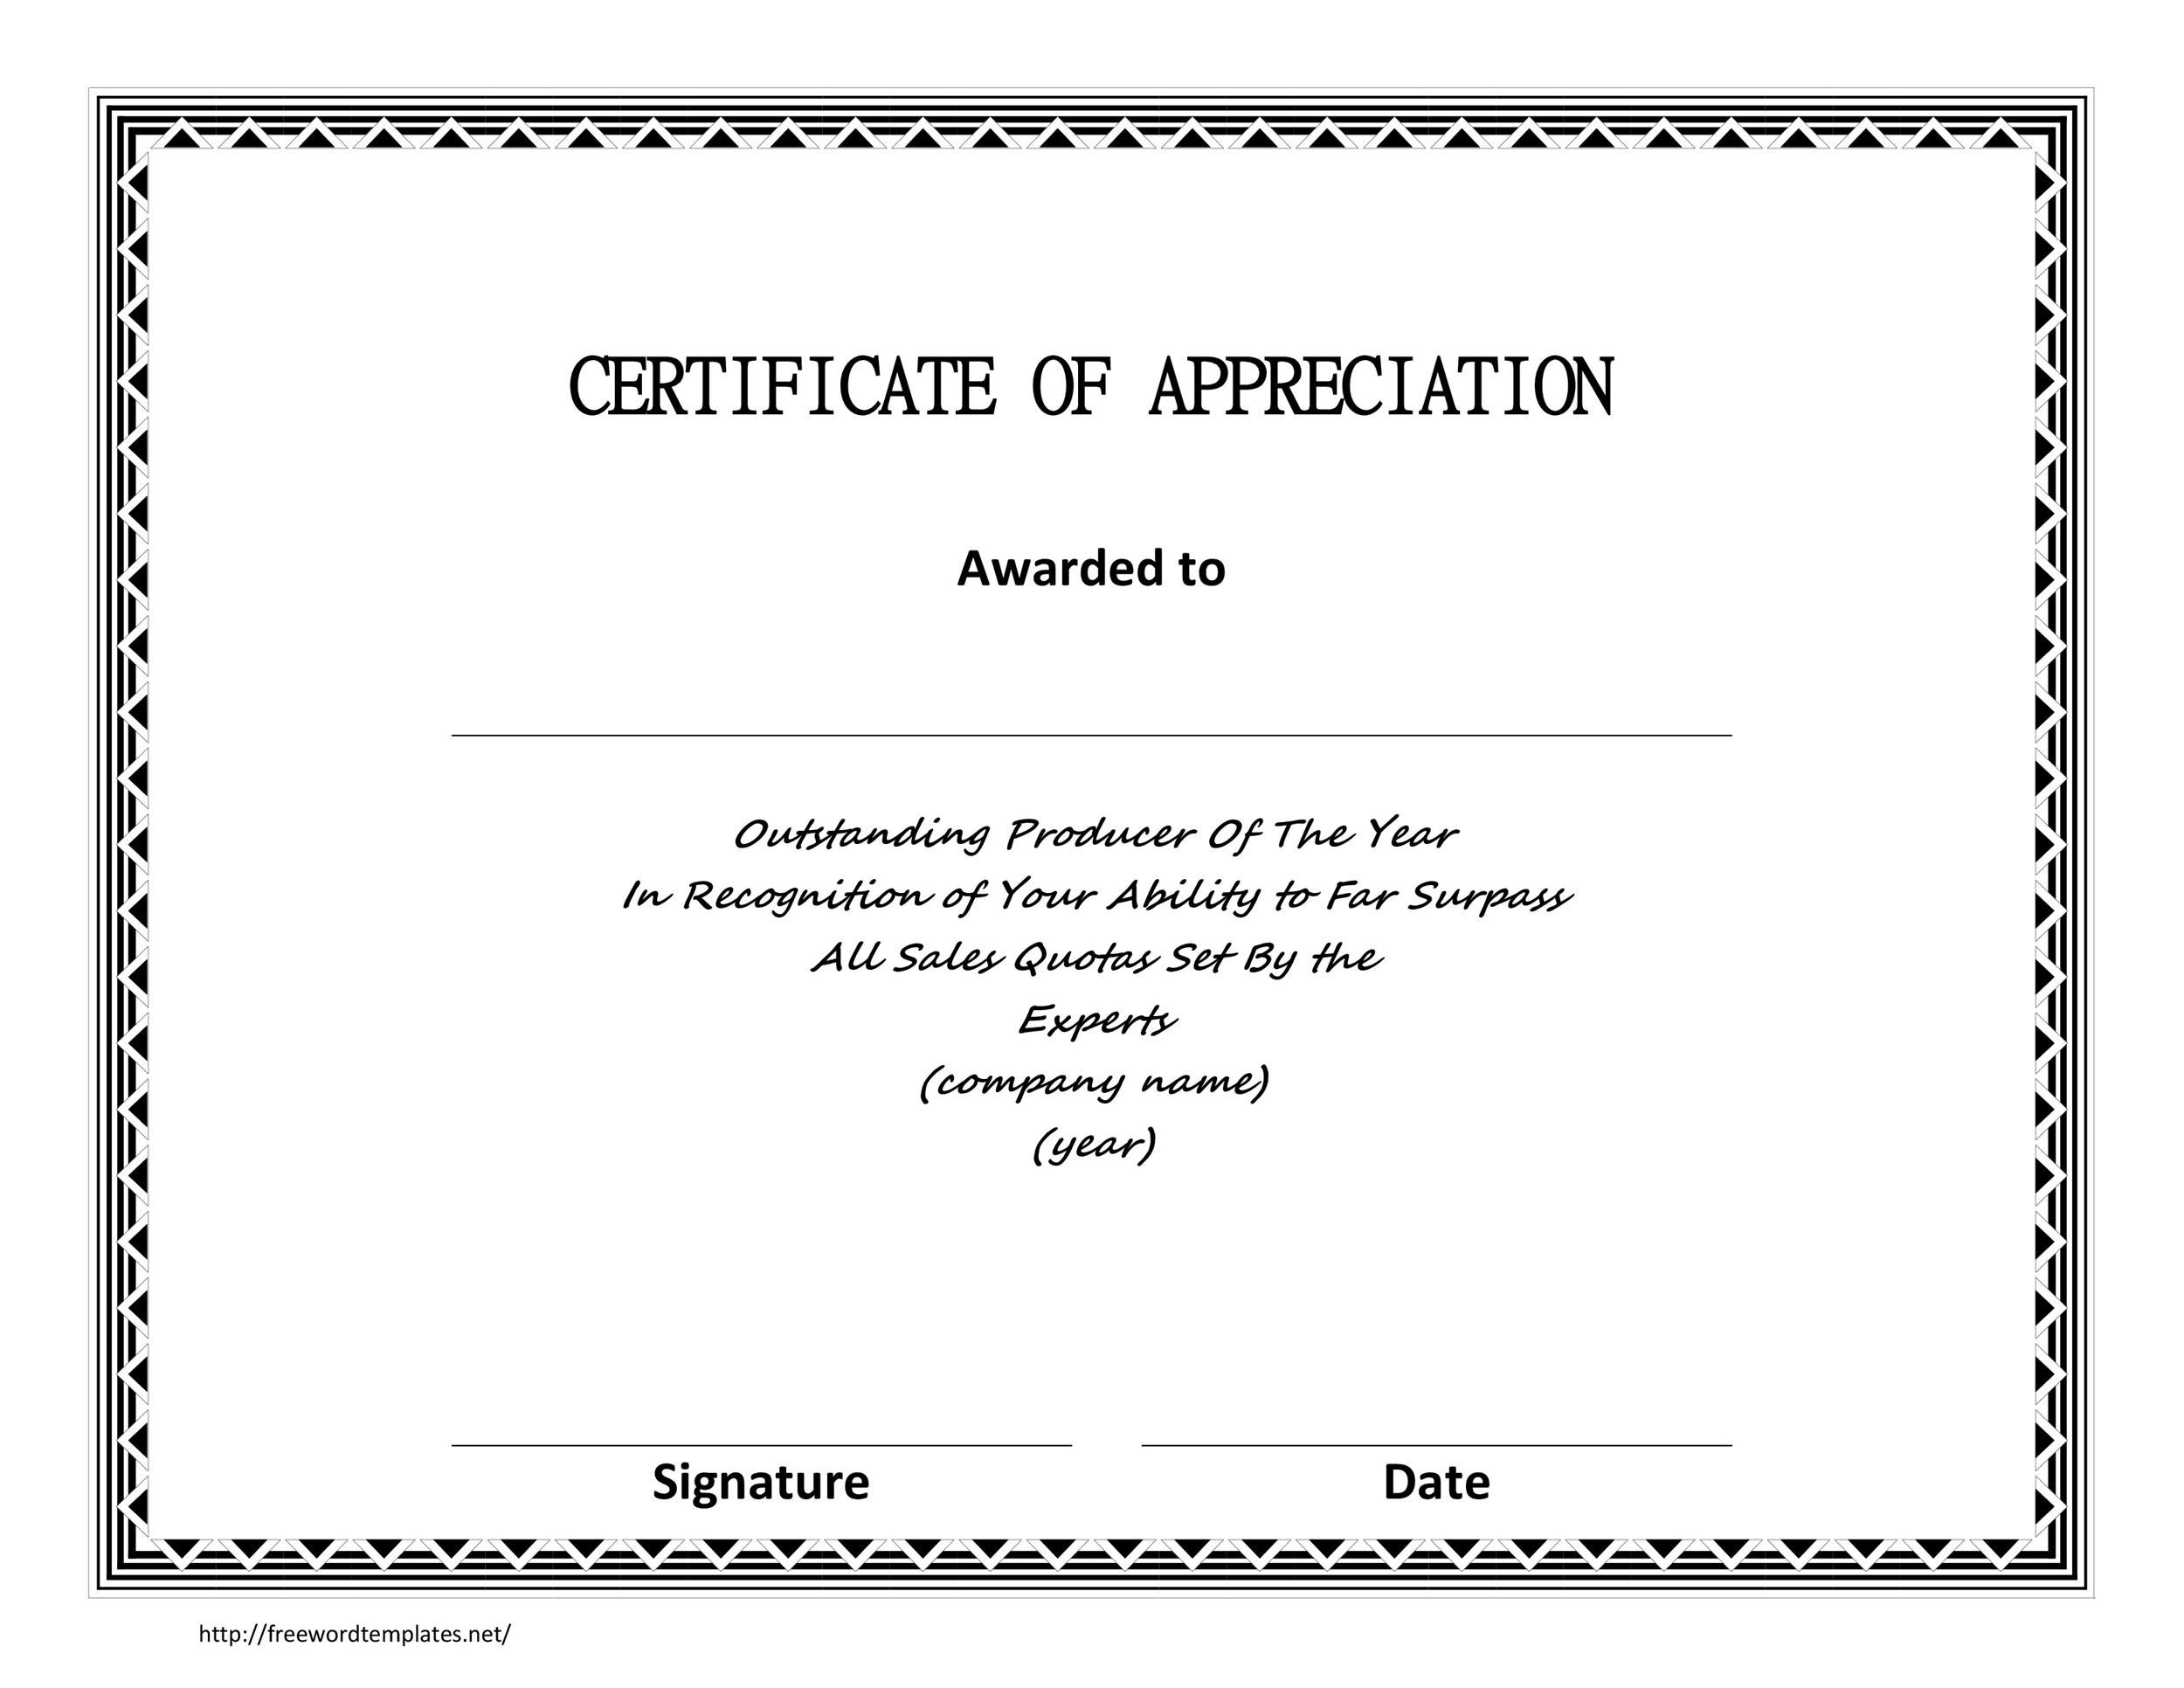 Awesome Printable Certificate Of Appreciation 06 Inside Certificate Of Appreciation Words